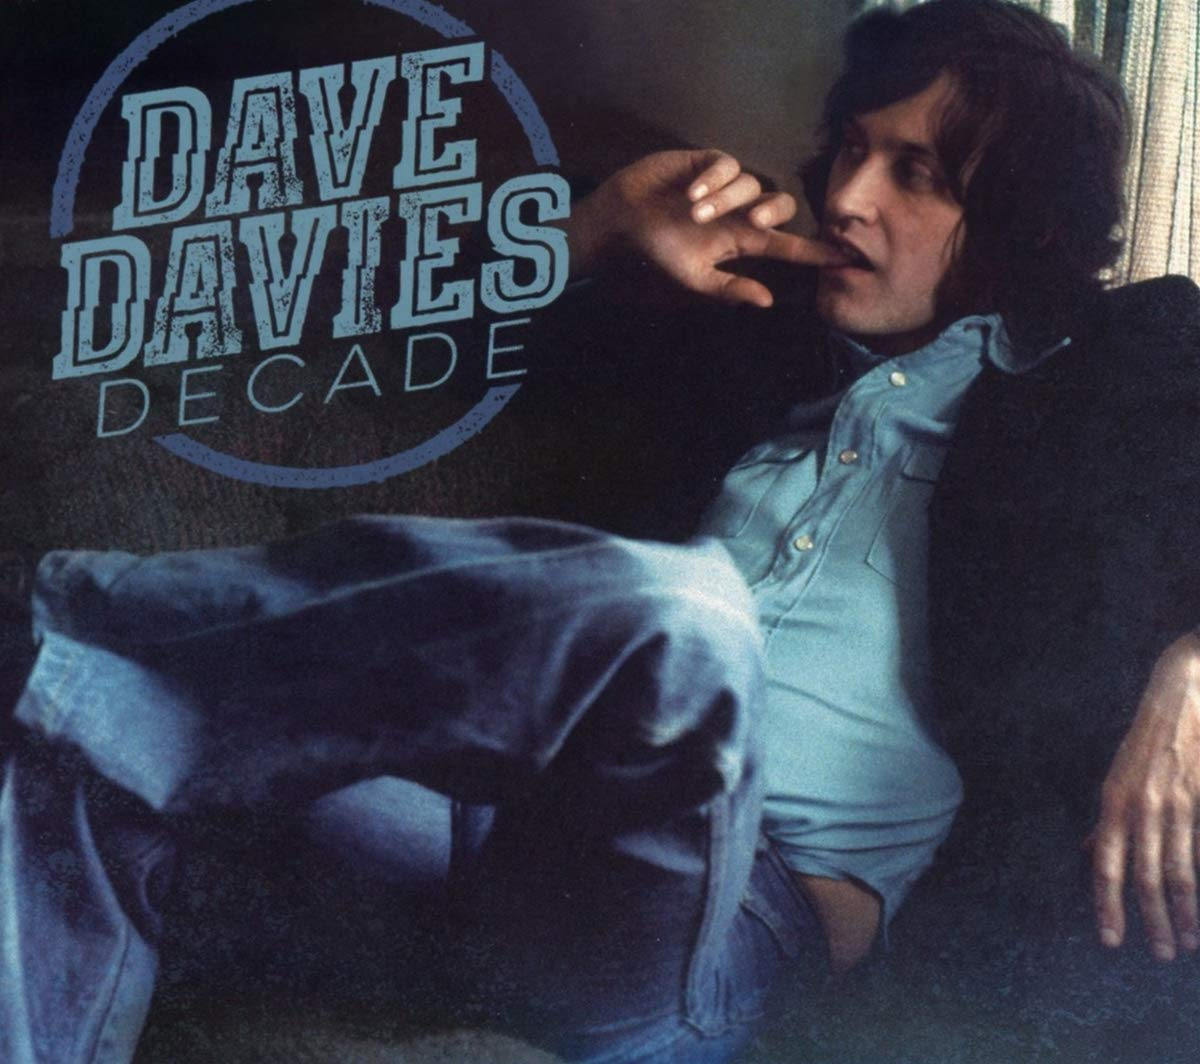 Image of Decade / Dave Davies